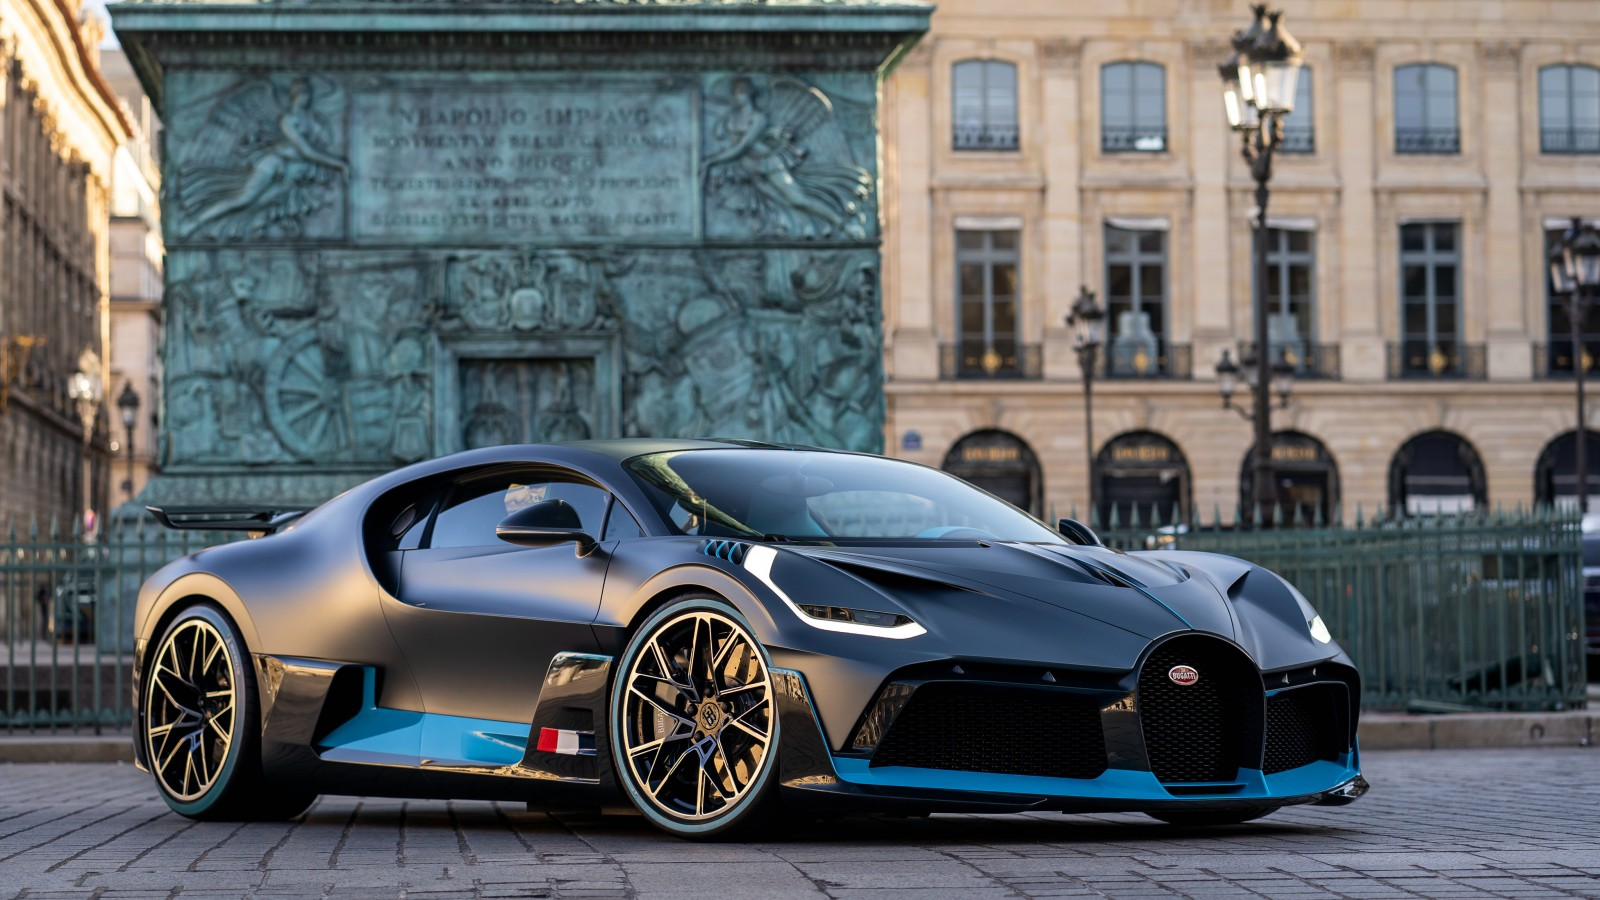 Bugatti divo in paris 4k wallpaper hd car wallpapers - Wallpaper hd 4k car ...